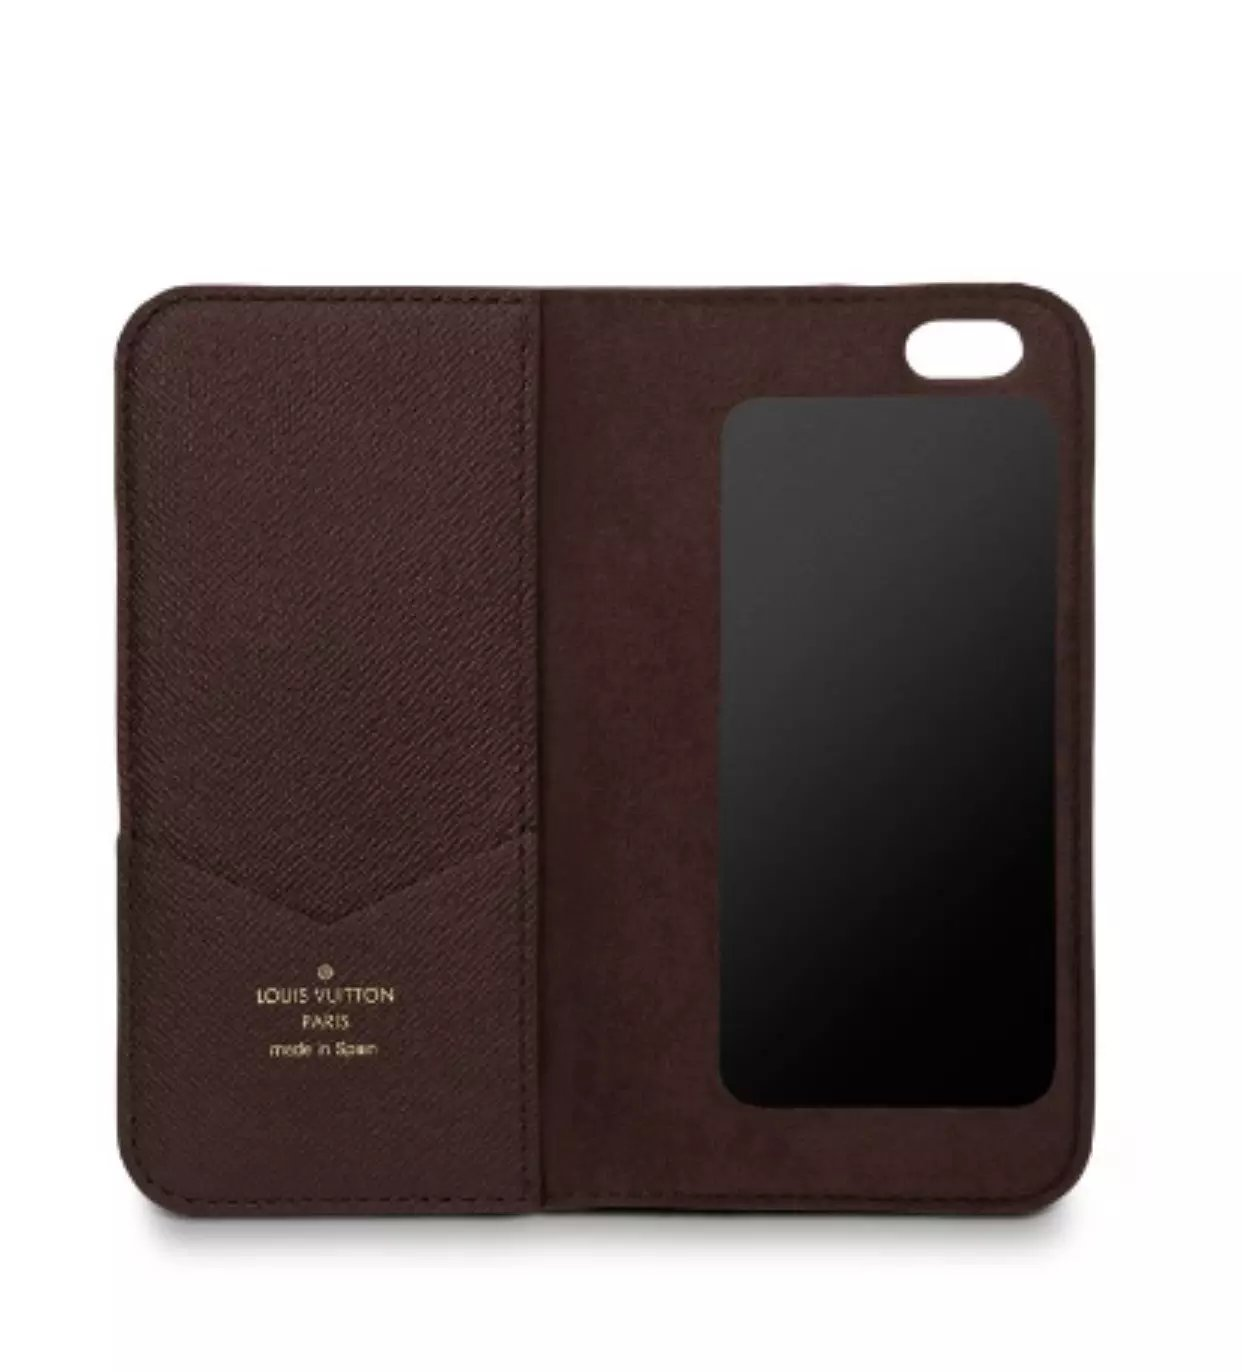 iphone hülle designen iphone hülle bedrucken Louis Vuitton iphone 8 Plus hüllen iphone foto hülle beste schutzfolie iphone 8 Plus iphone 8 Plus designer hülle iphone 8 Plus durchsichtig design handy hüllen iphone 8 Plus hutzhülle mit akku